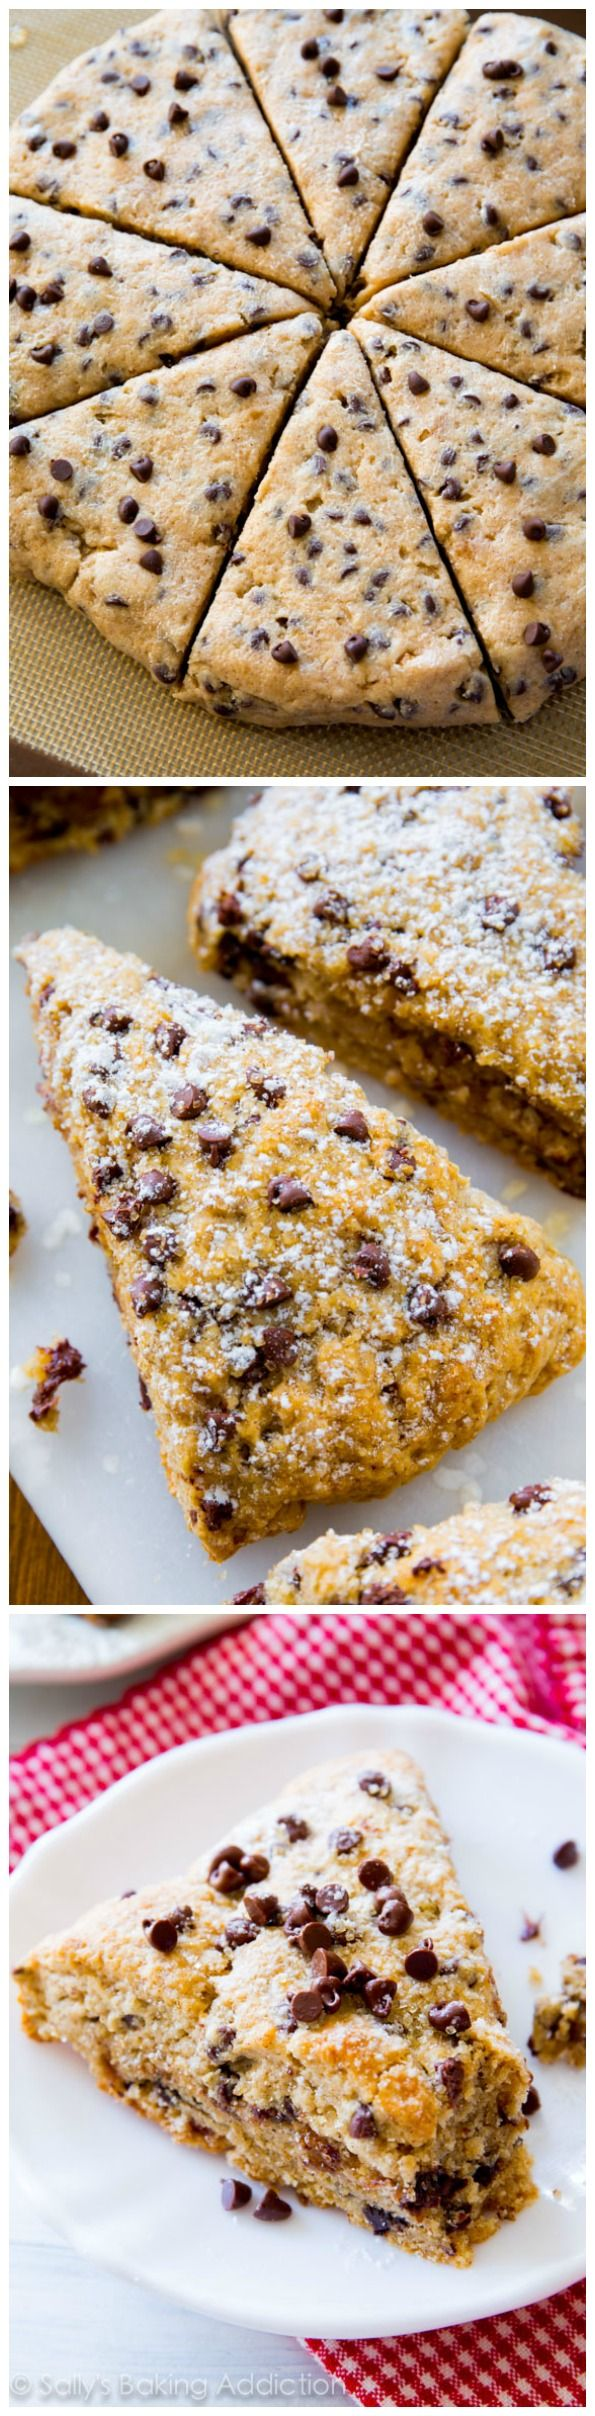 Melt-in-your-mouth Chocolate Chip Scones. Tender, moist, and easy to make